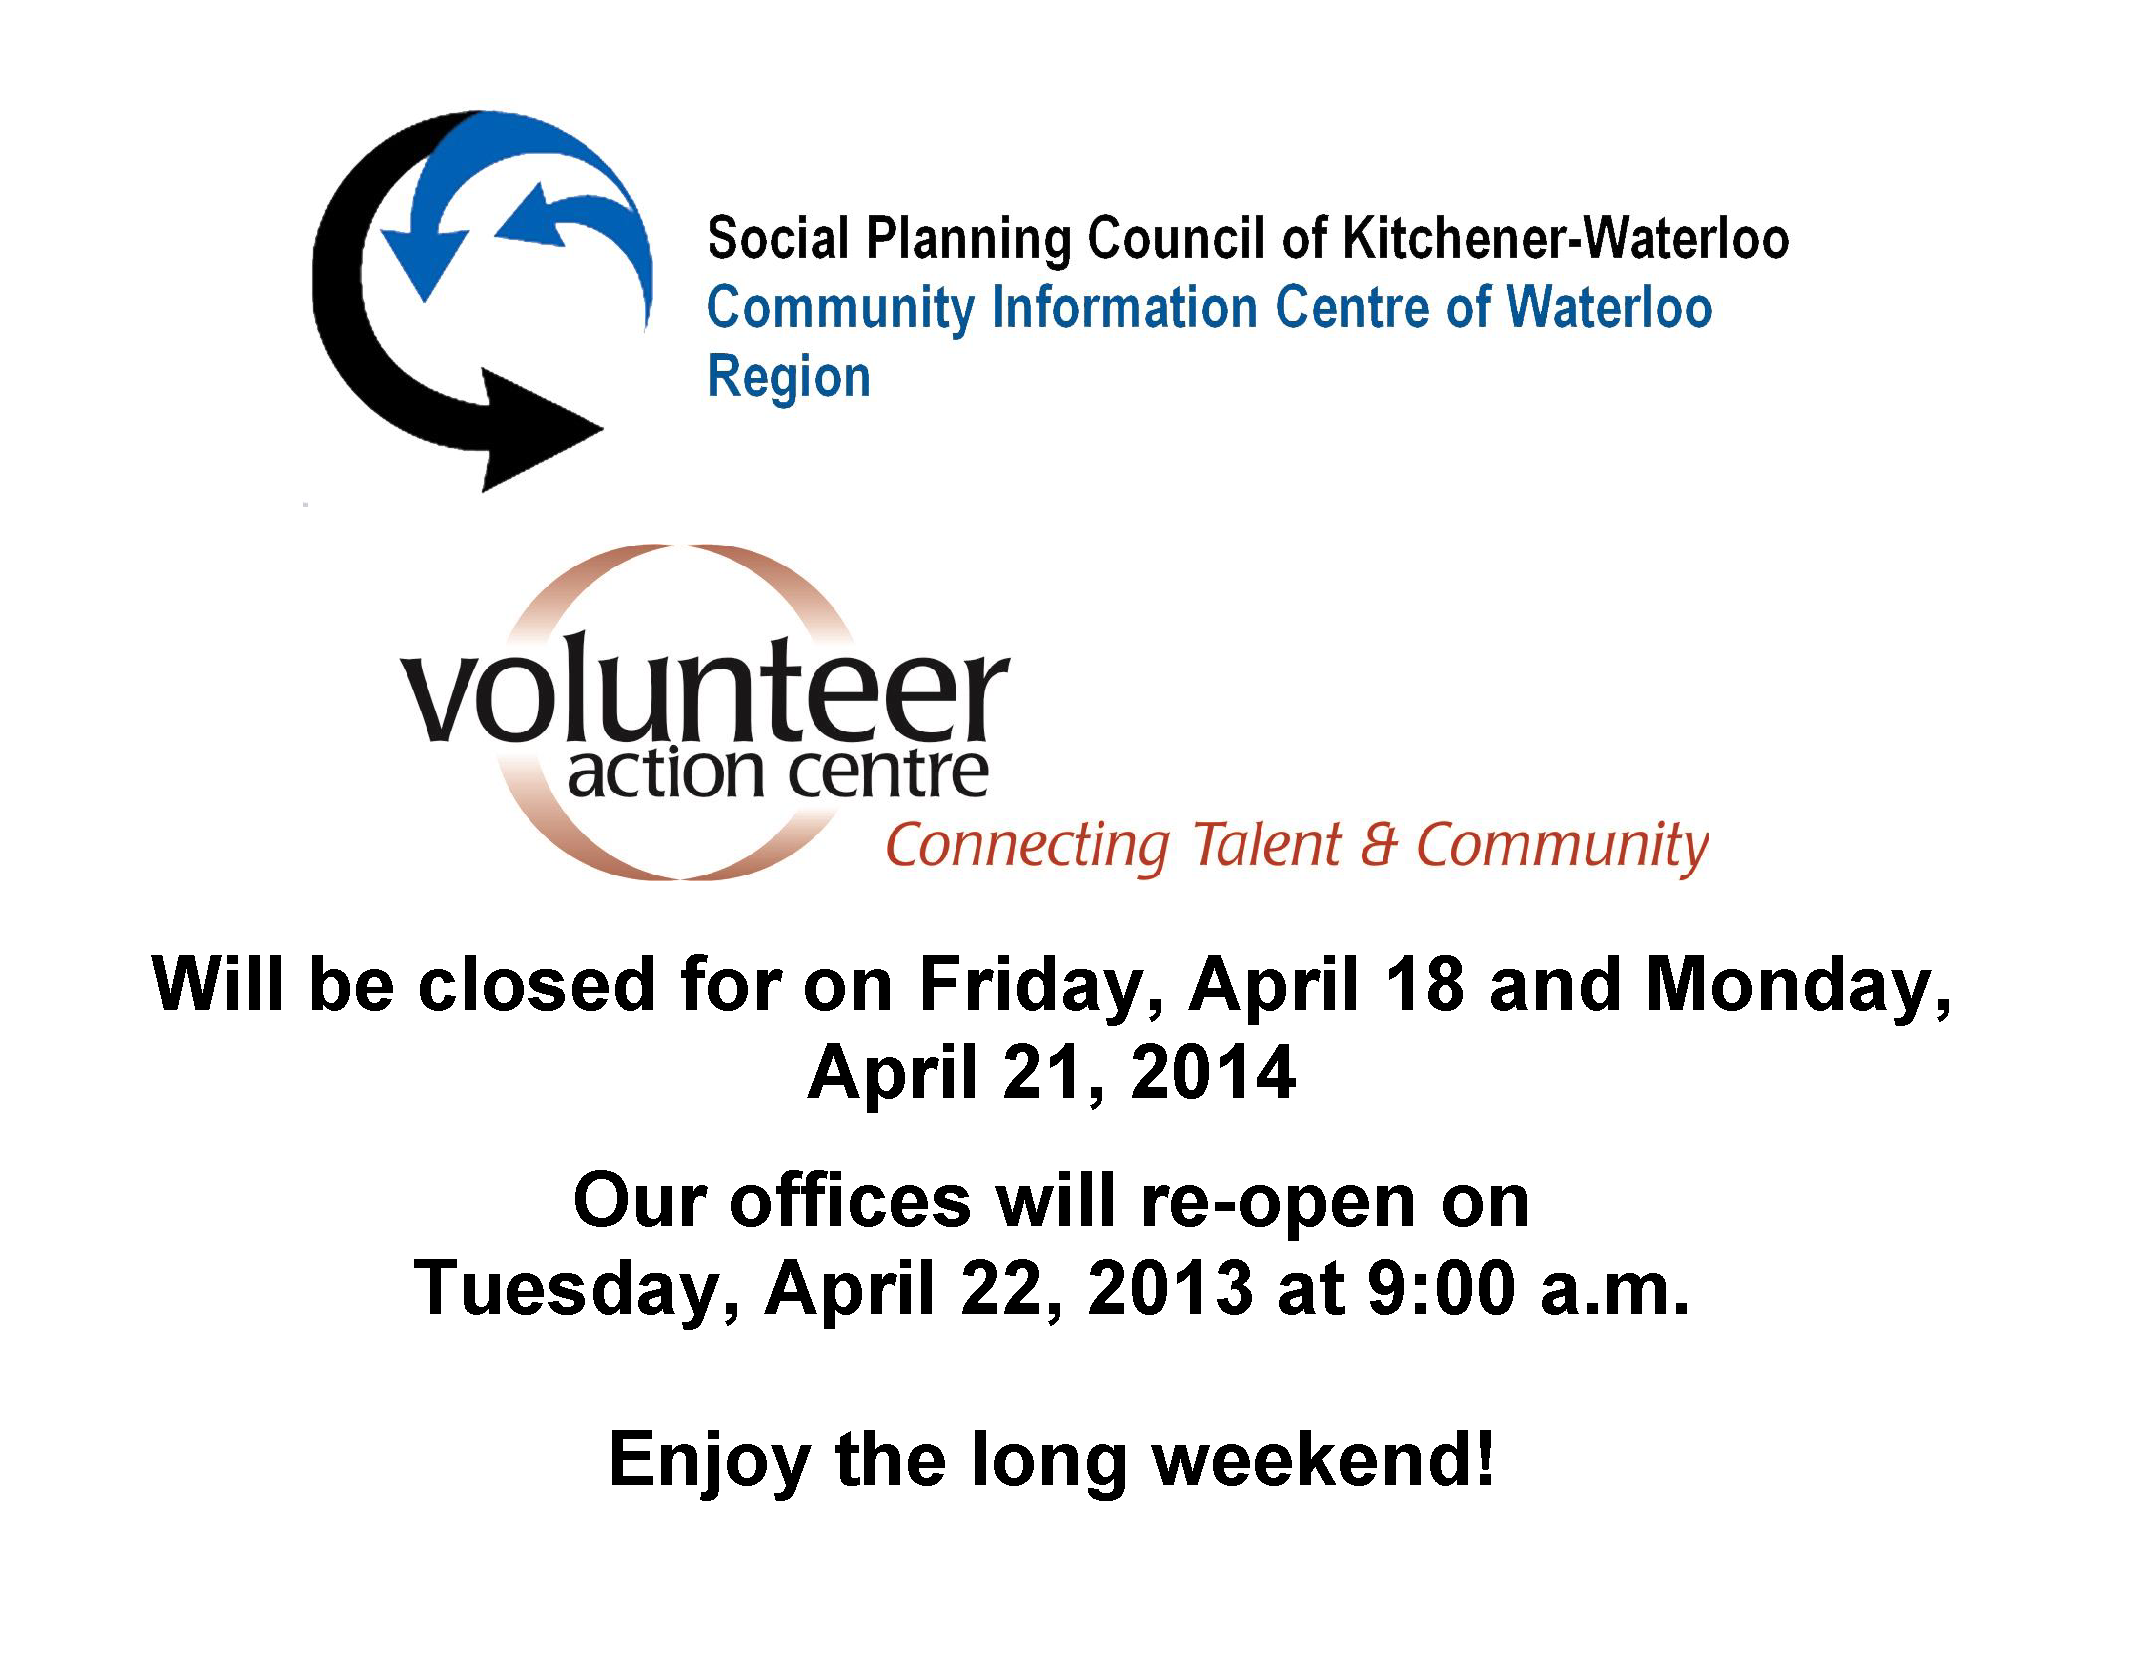 Easter Closure 2014